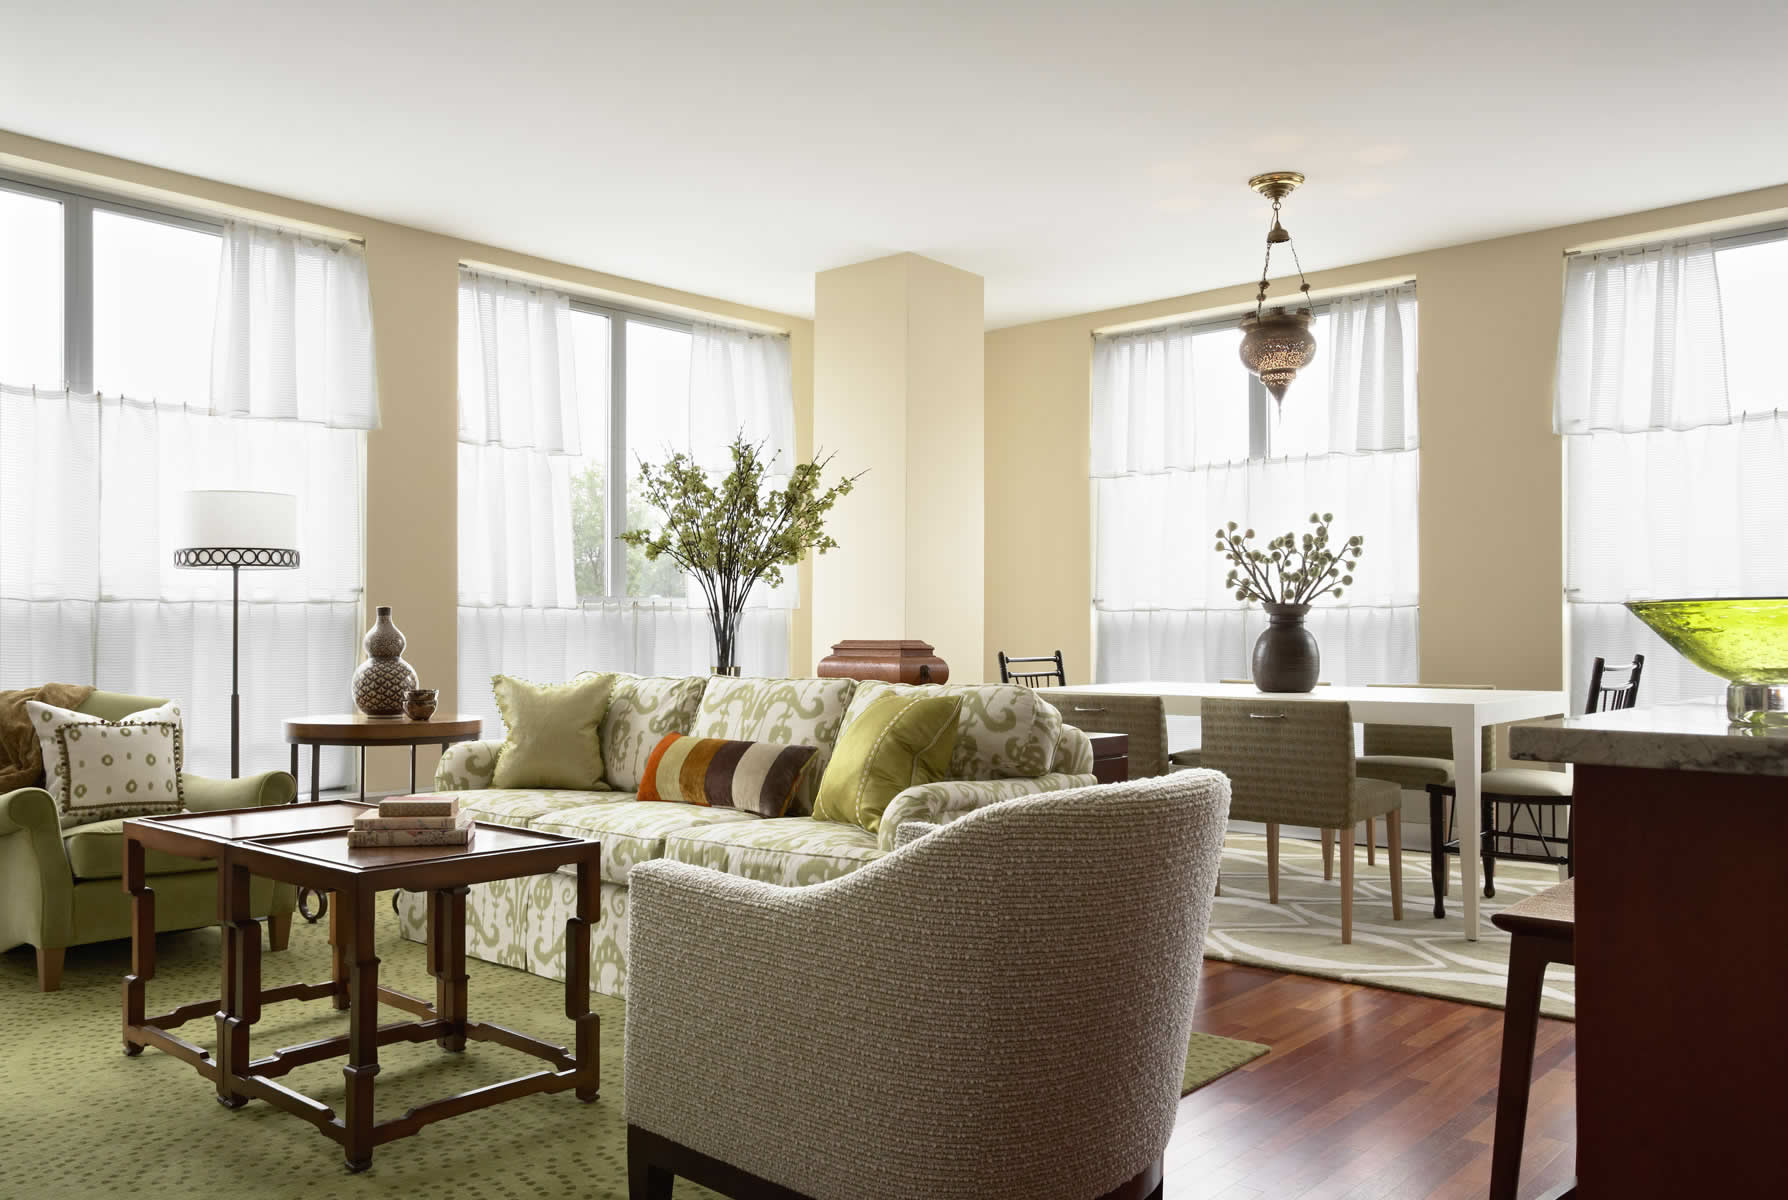 green ikat sofa in living room with green and neutral color palette